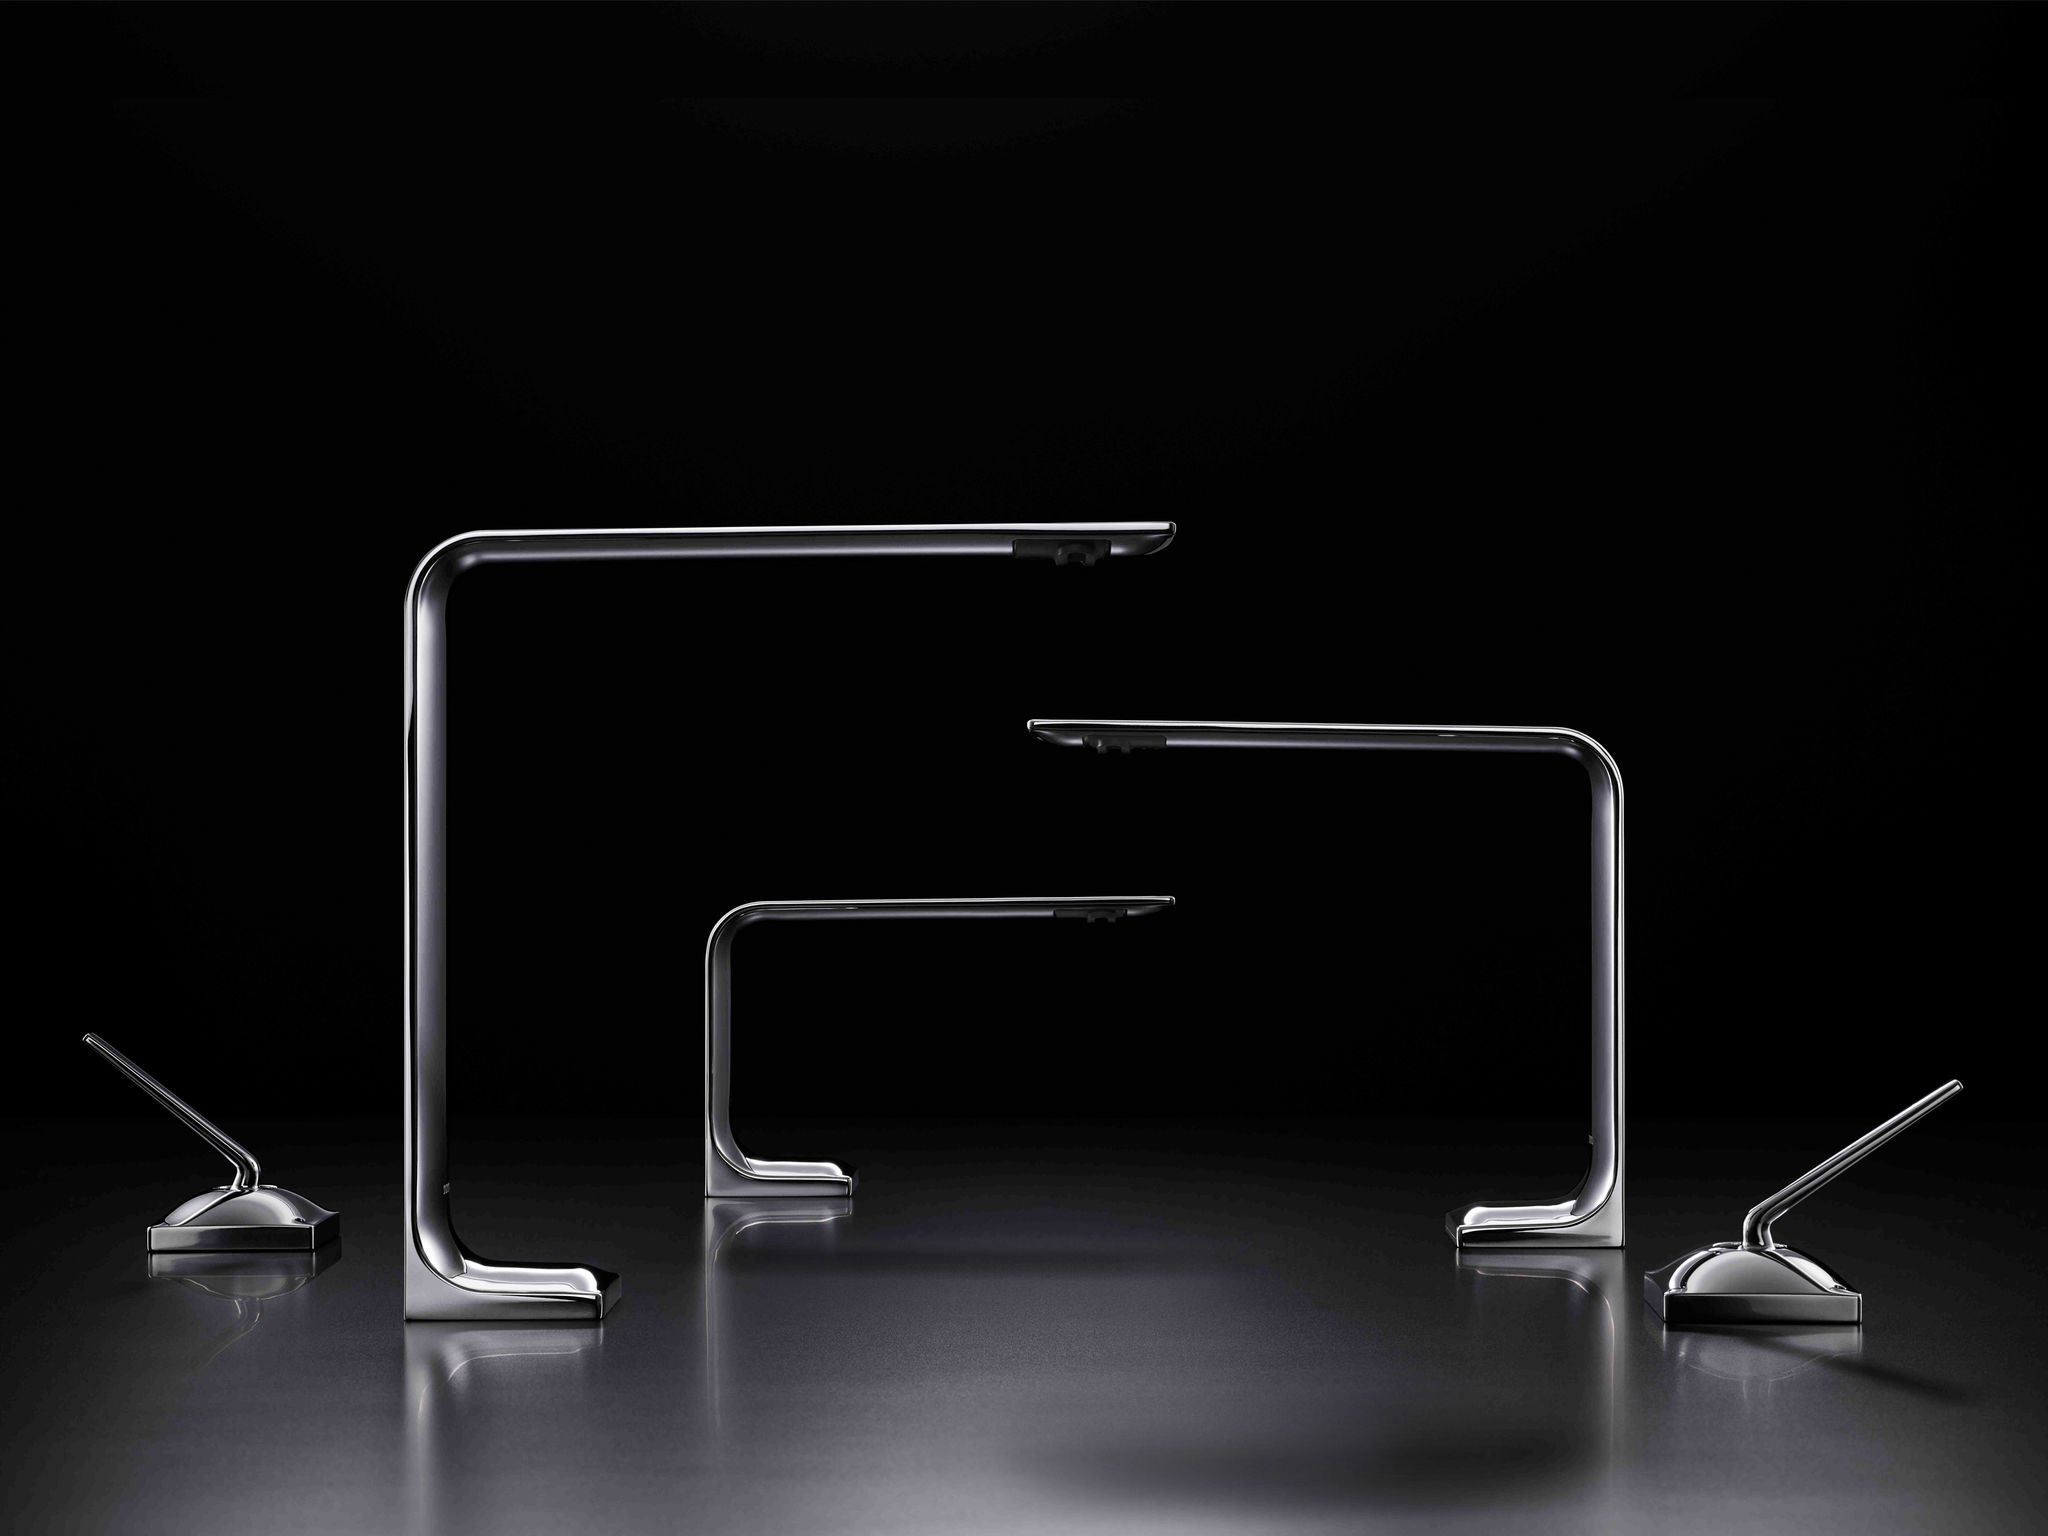 ZL series lavatory faucet | iF WORLD DESIGN GUIDE